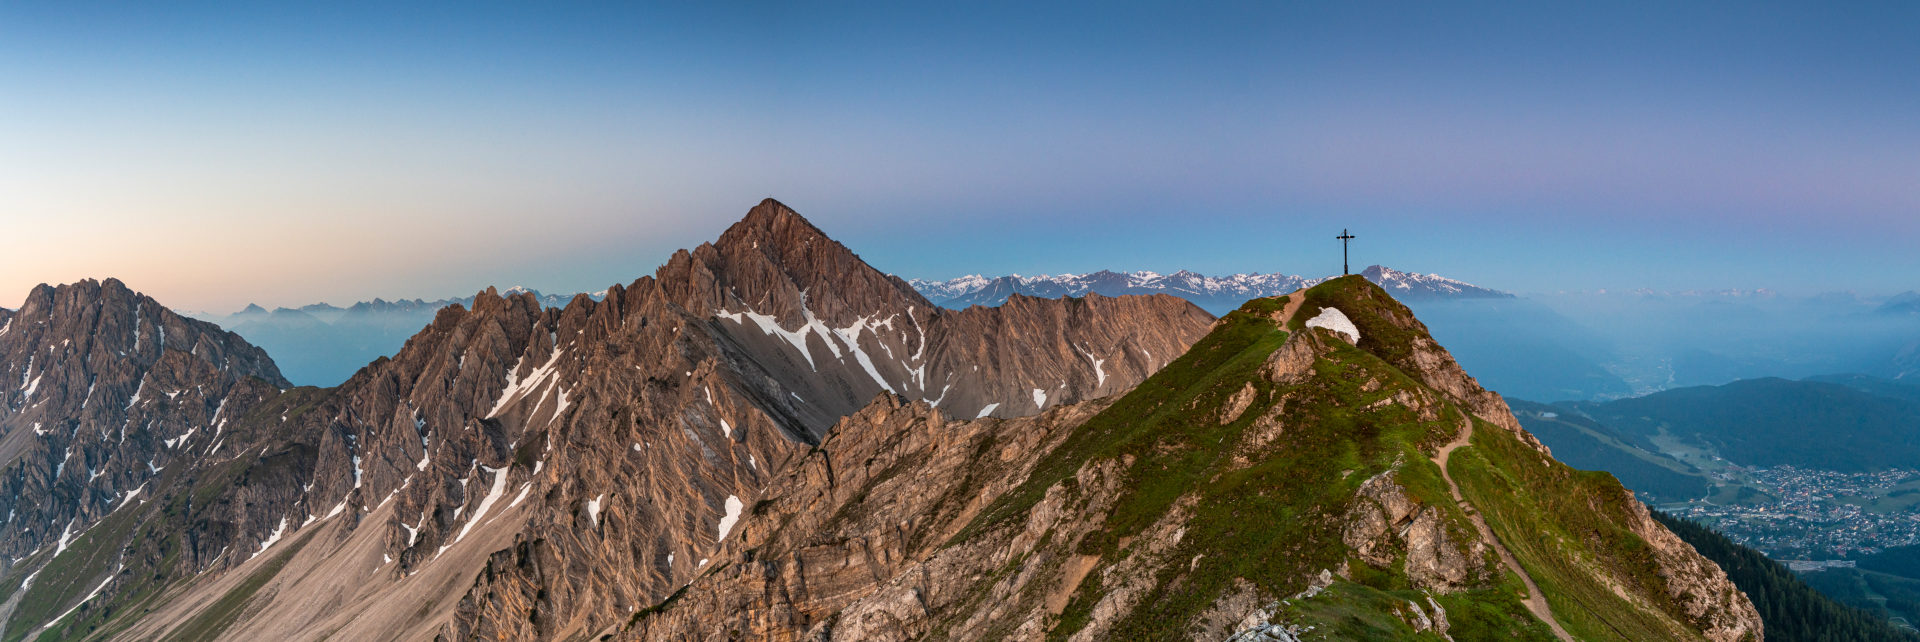 View of the Reither Spitze (2374 m) and the Seefelder Spitze (2221 m) in the Karwendel Mountains shortly after sunrise.